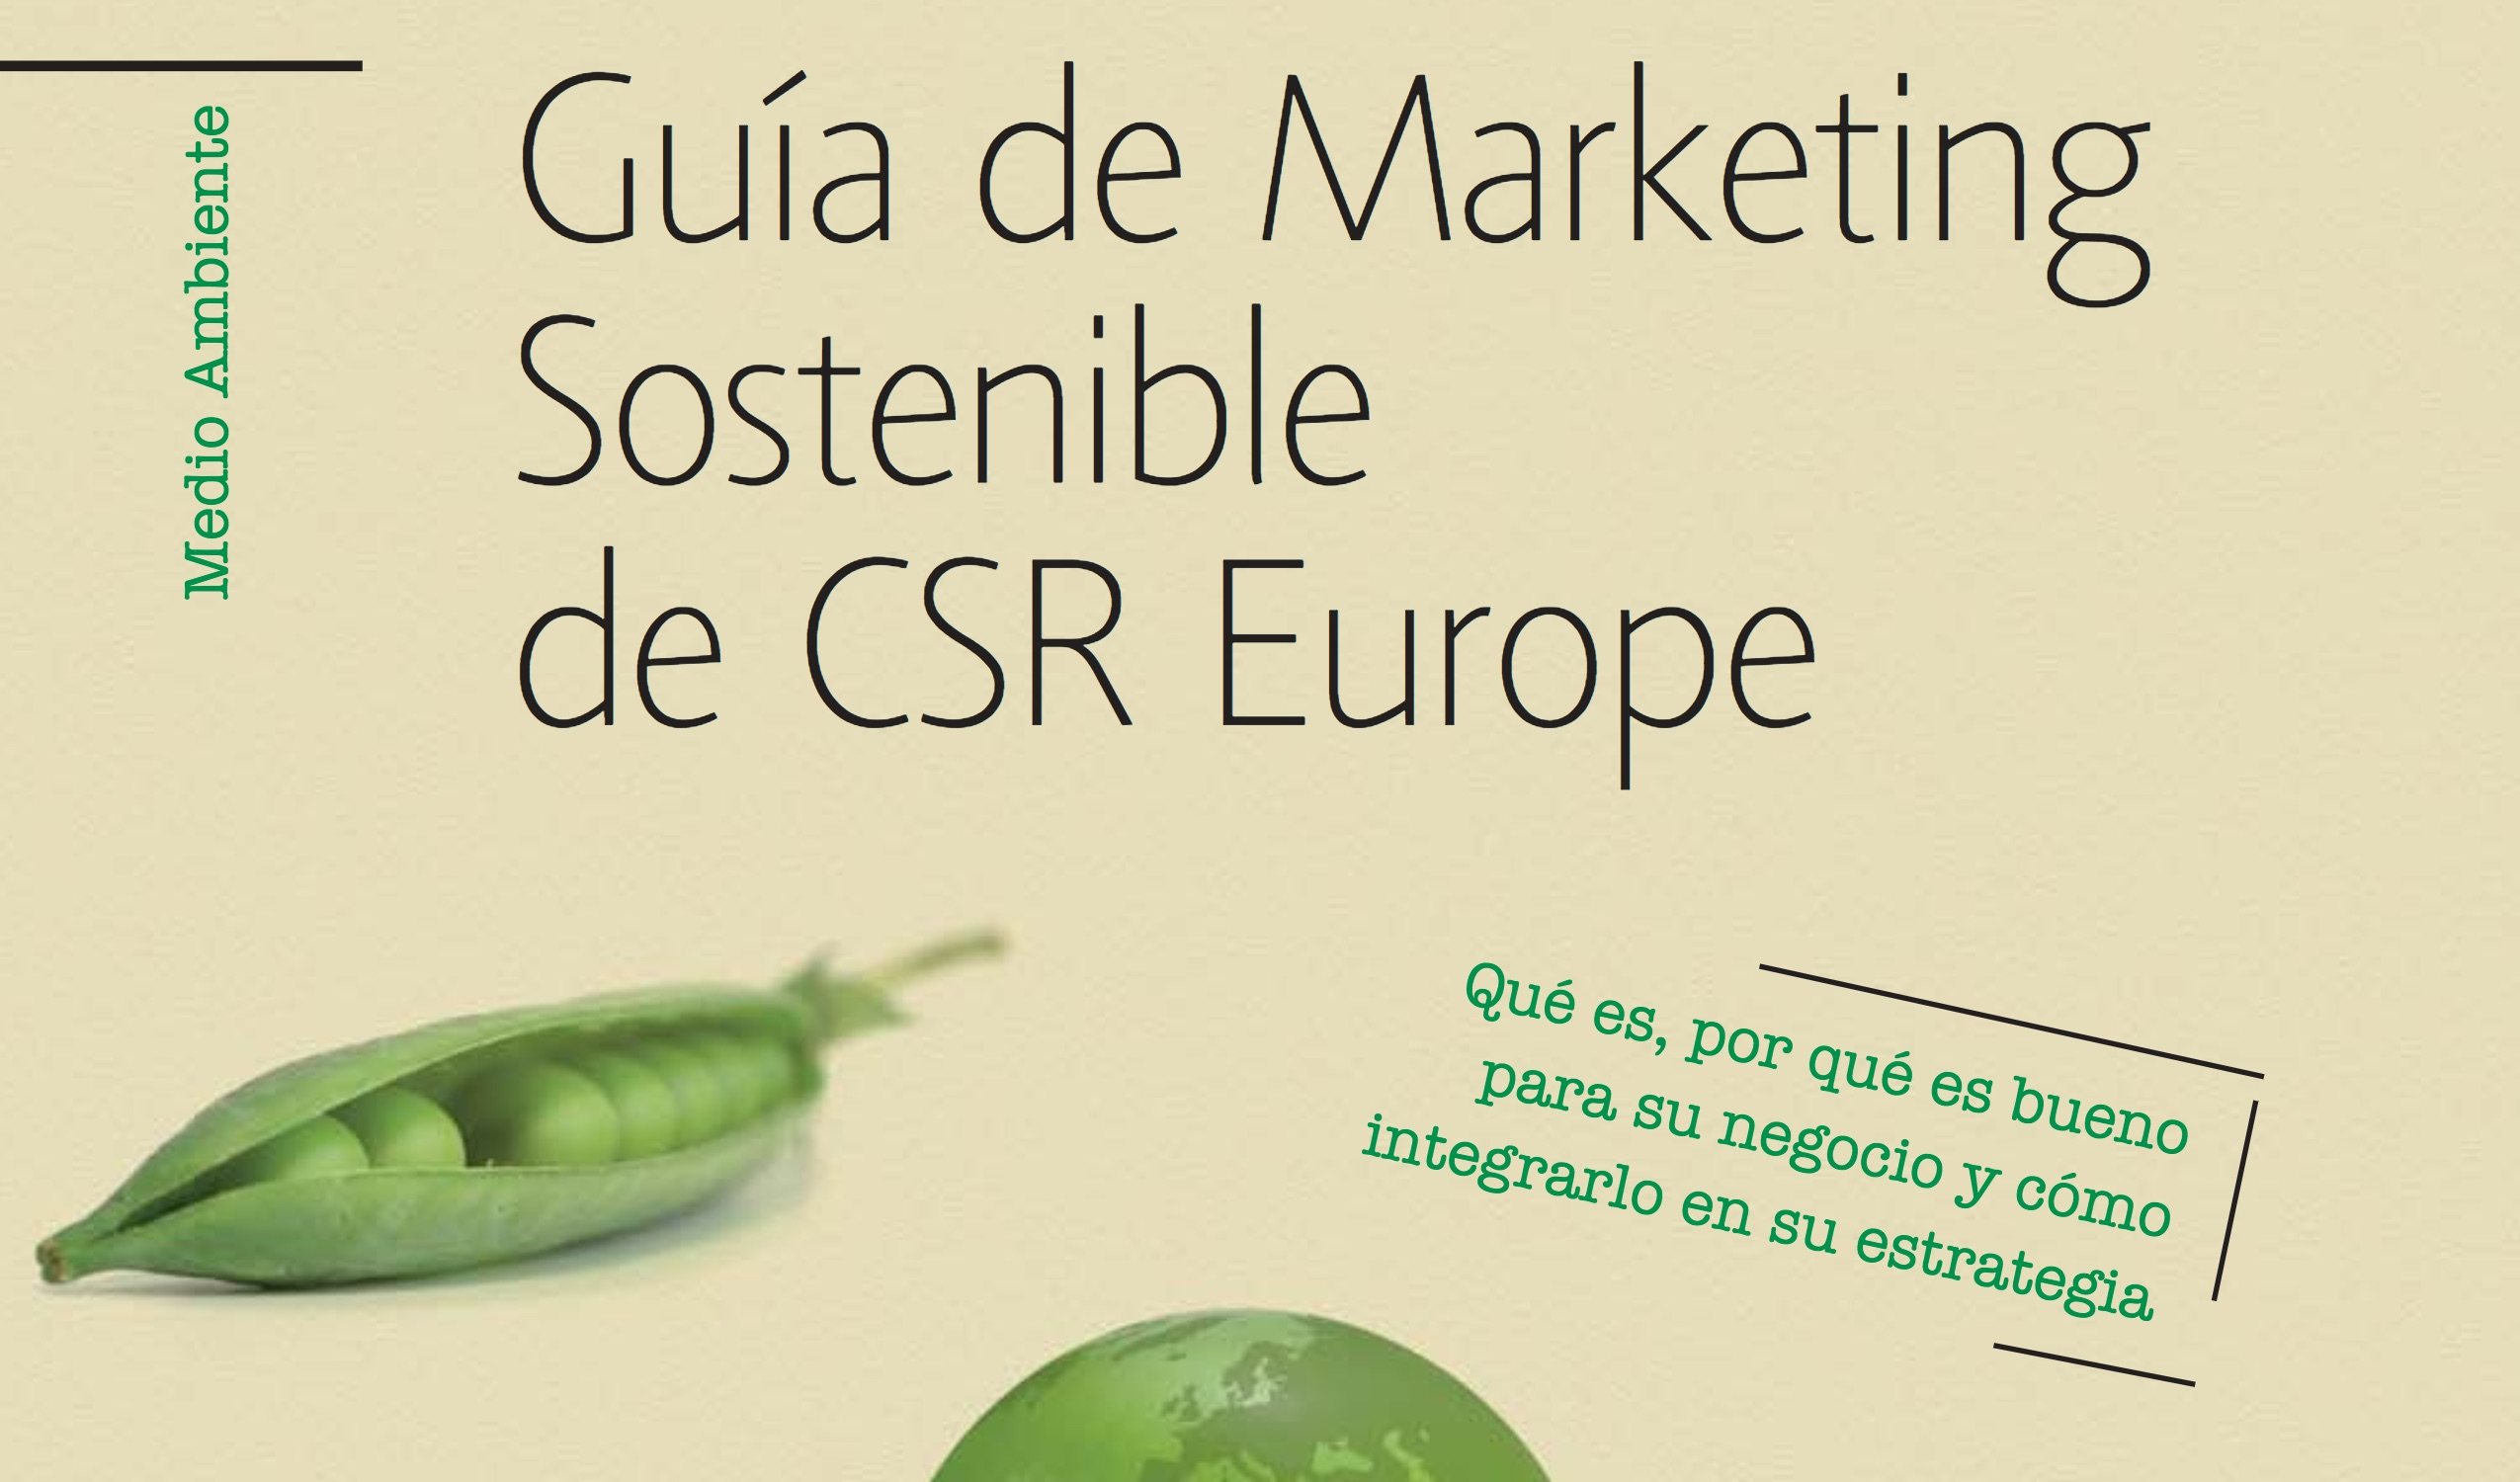 Guia de Marketing Sostenible - CFR